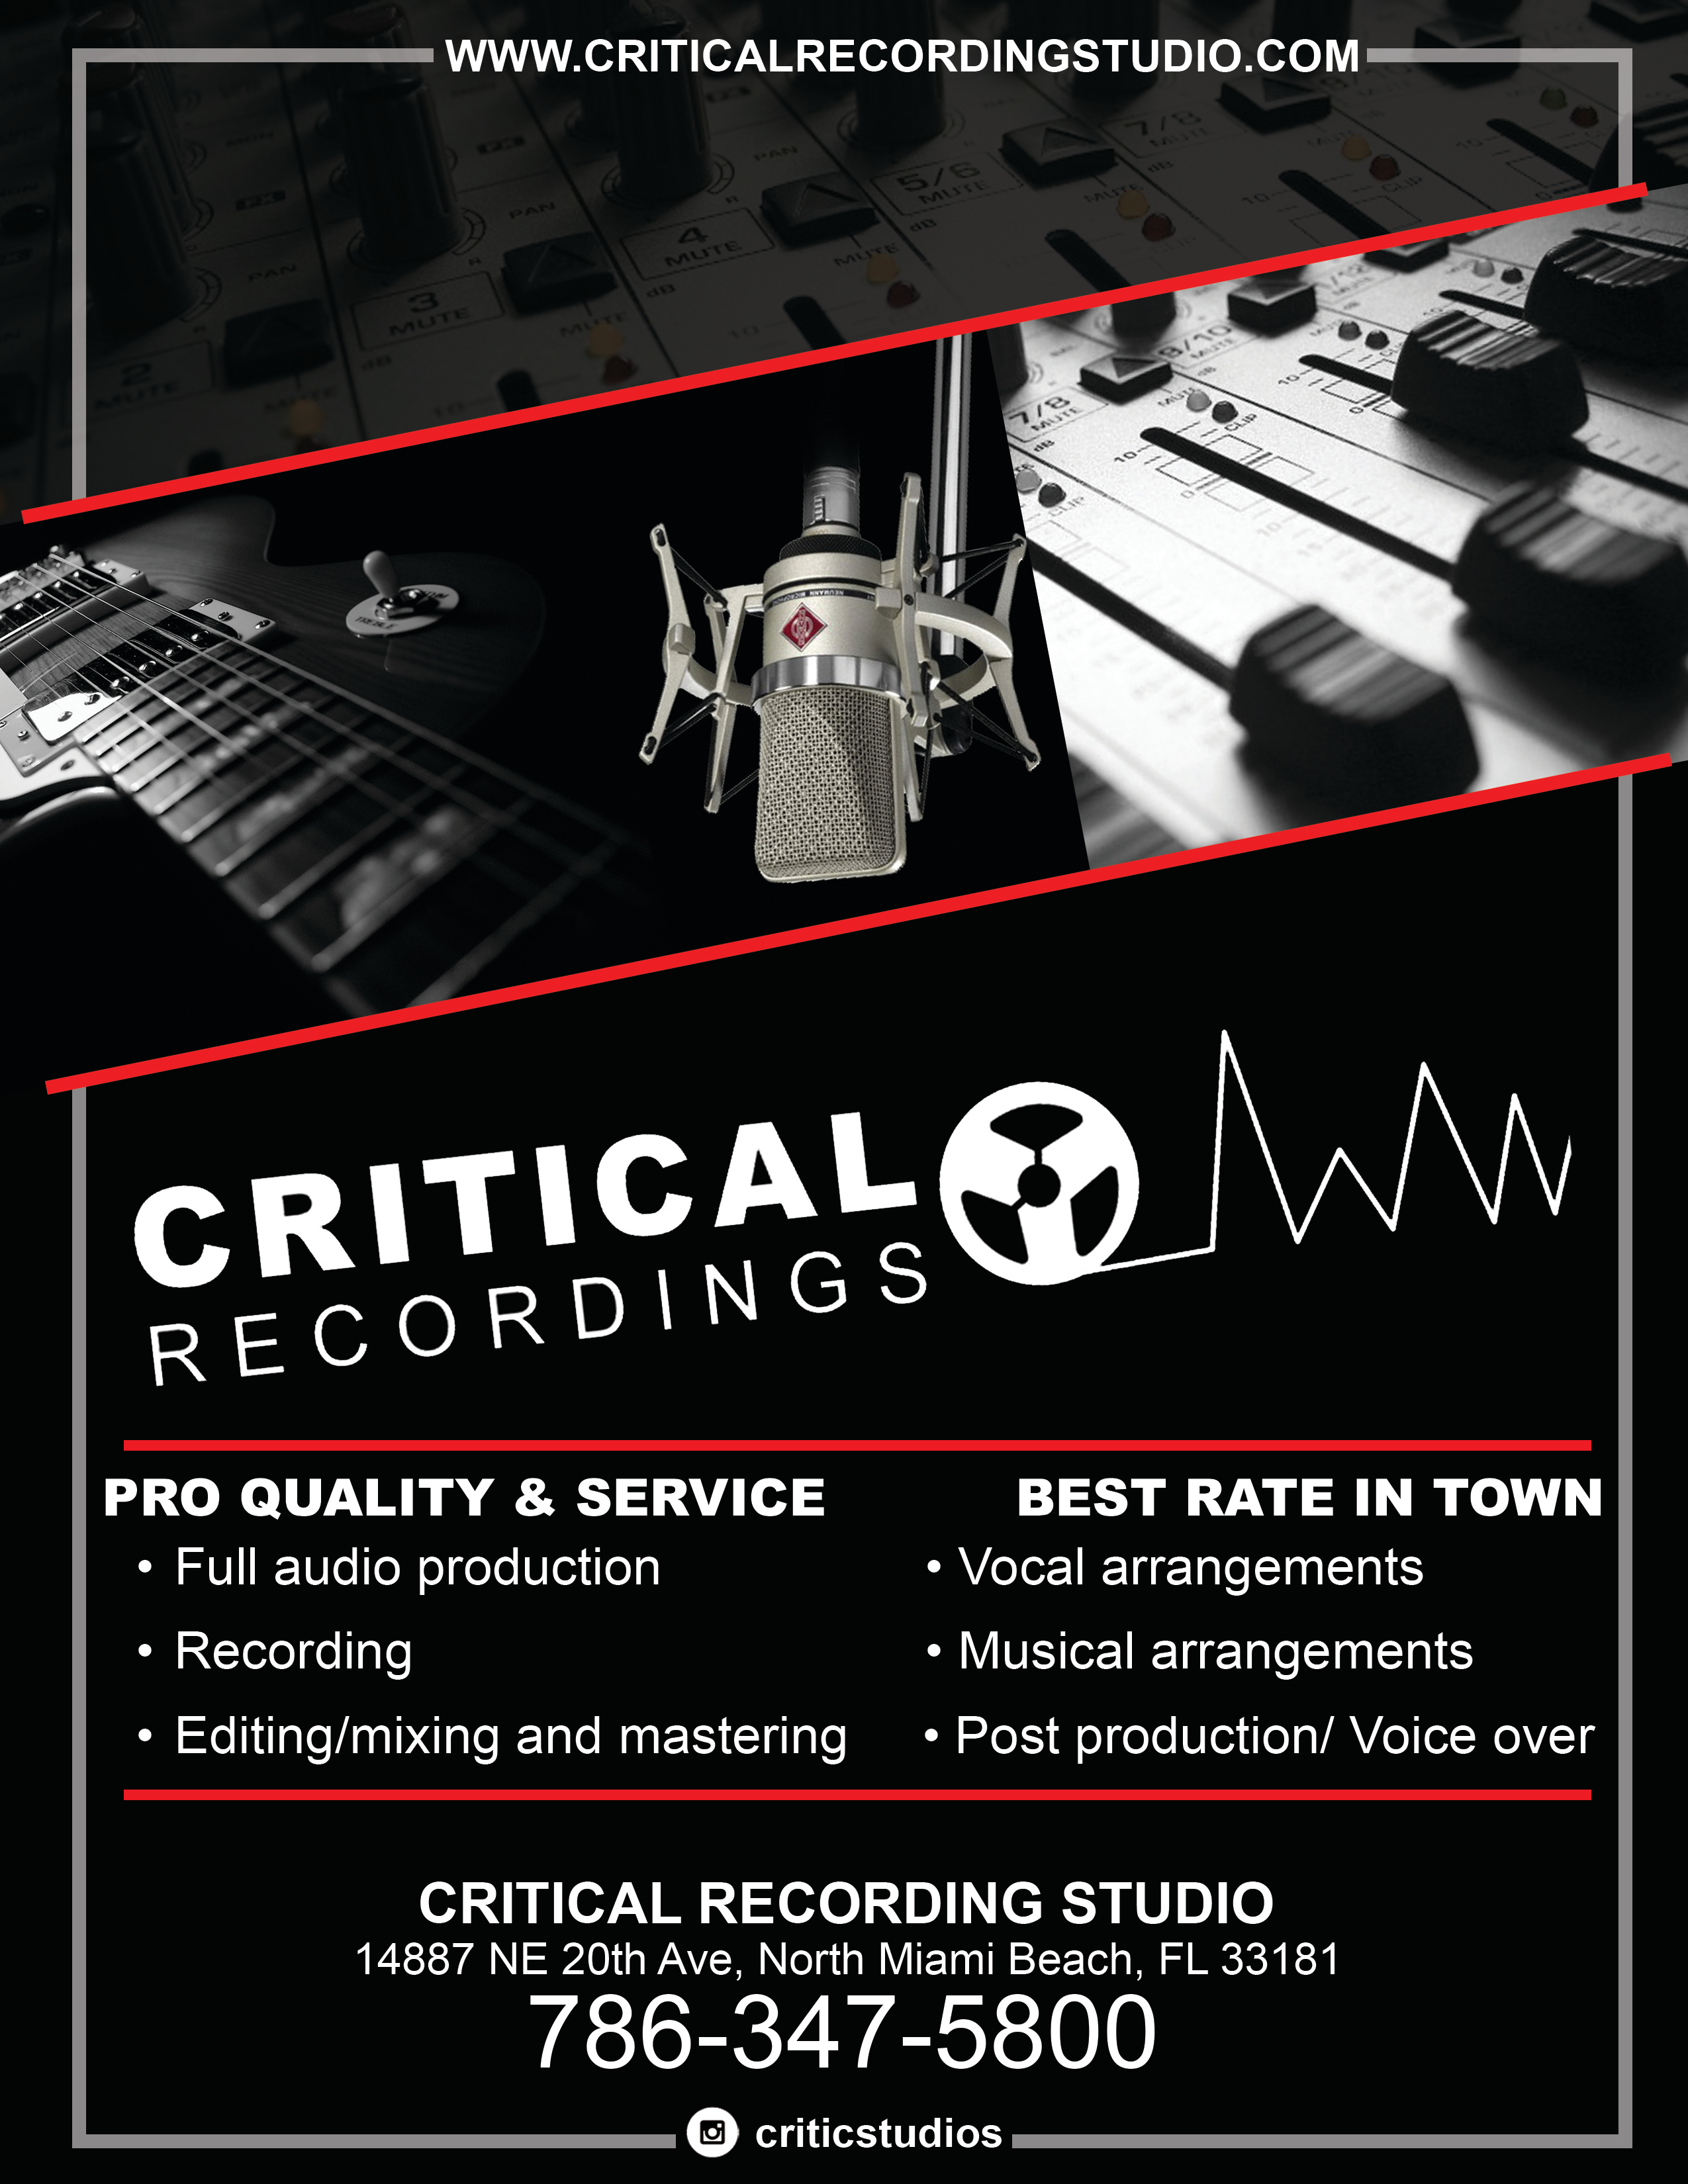 How Much Do Good Music Studios Cost?